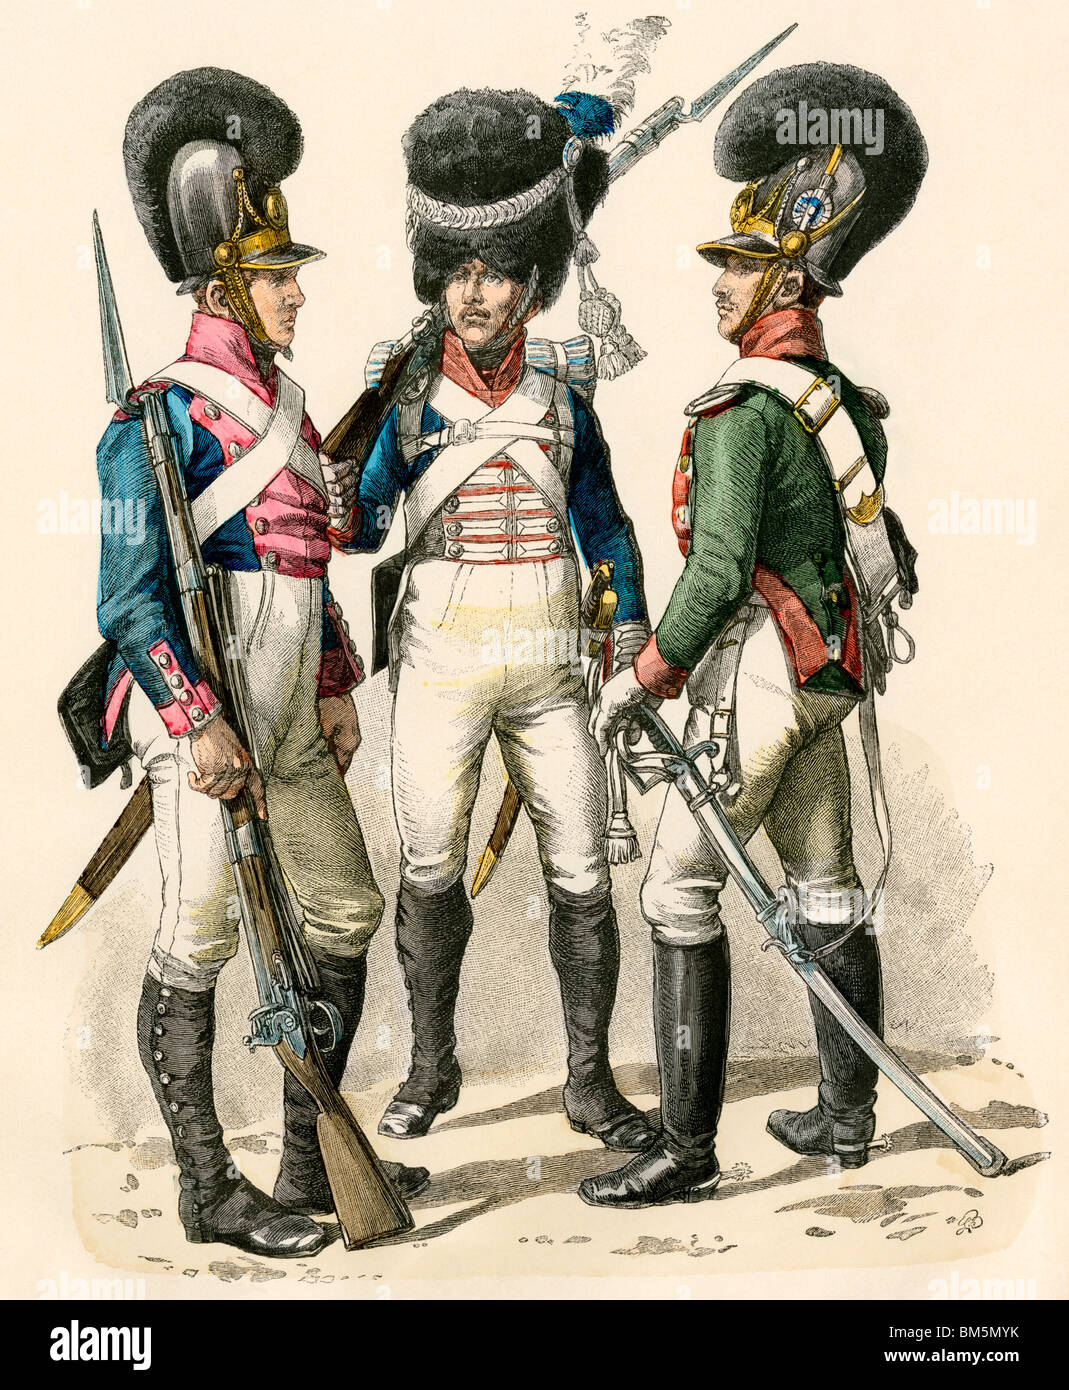 French army uniforms: infantry 1814-1825, grenadier 1812-1815, and cavalry 1805-1812. Hand-colored print - Stock Image